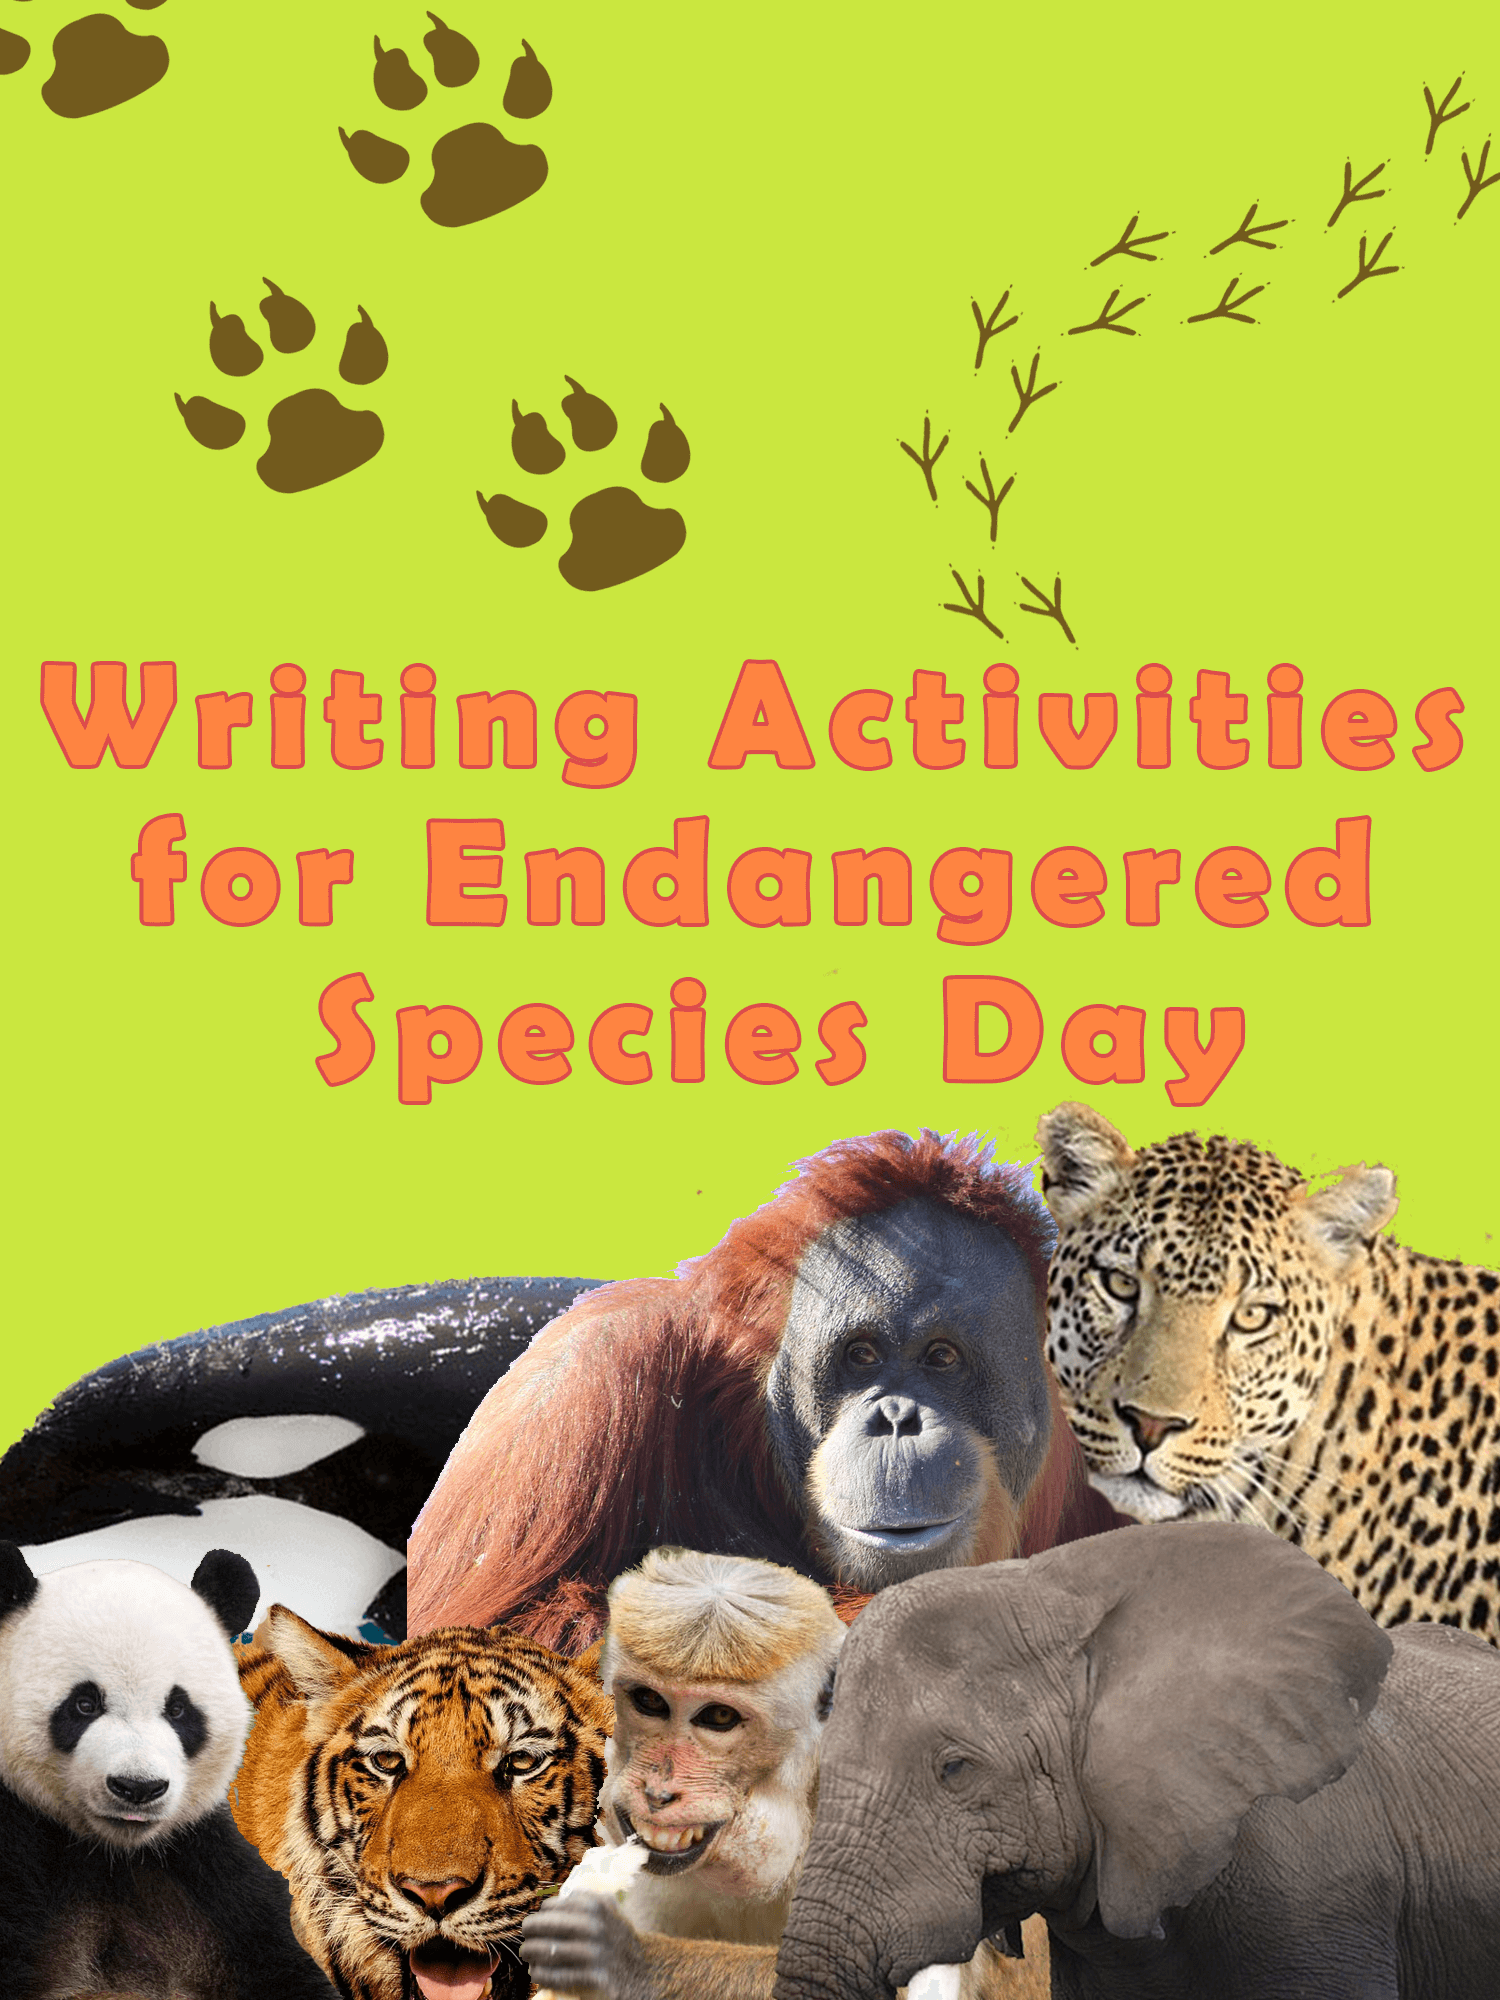 Free Printable Adding And Subtracting Fractions Worksheets  Writing Activities For Endangered Species Day  Imagine Forest Printable 7th Grade Reading Comprehension Worksheets Word with Advanced Esl Worksheets Writing Activities For Endangered Species Dayimagine Forest Free Print Worksheets Excel